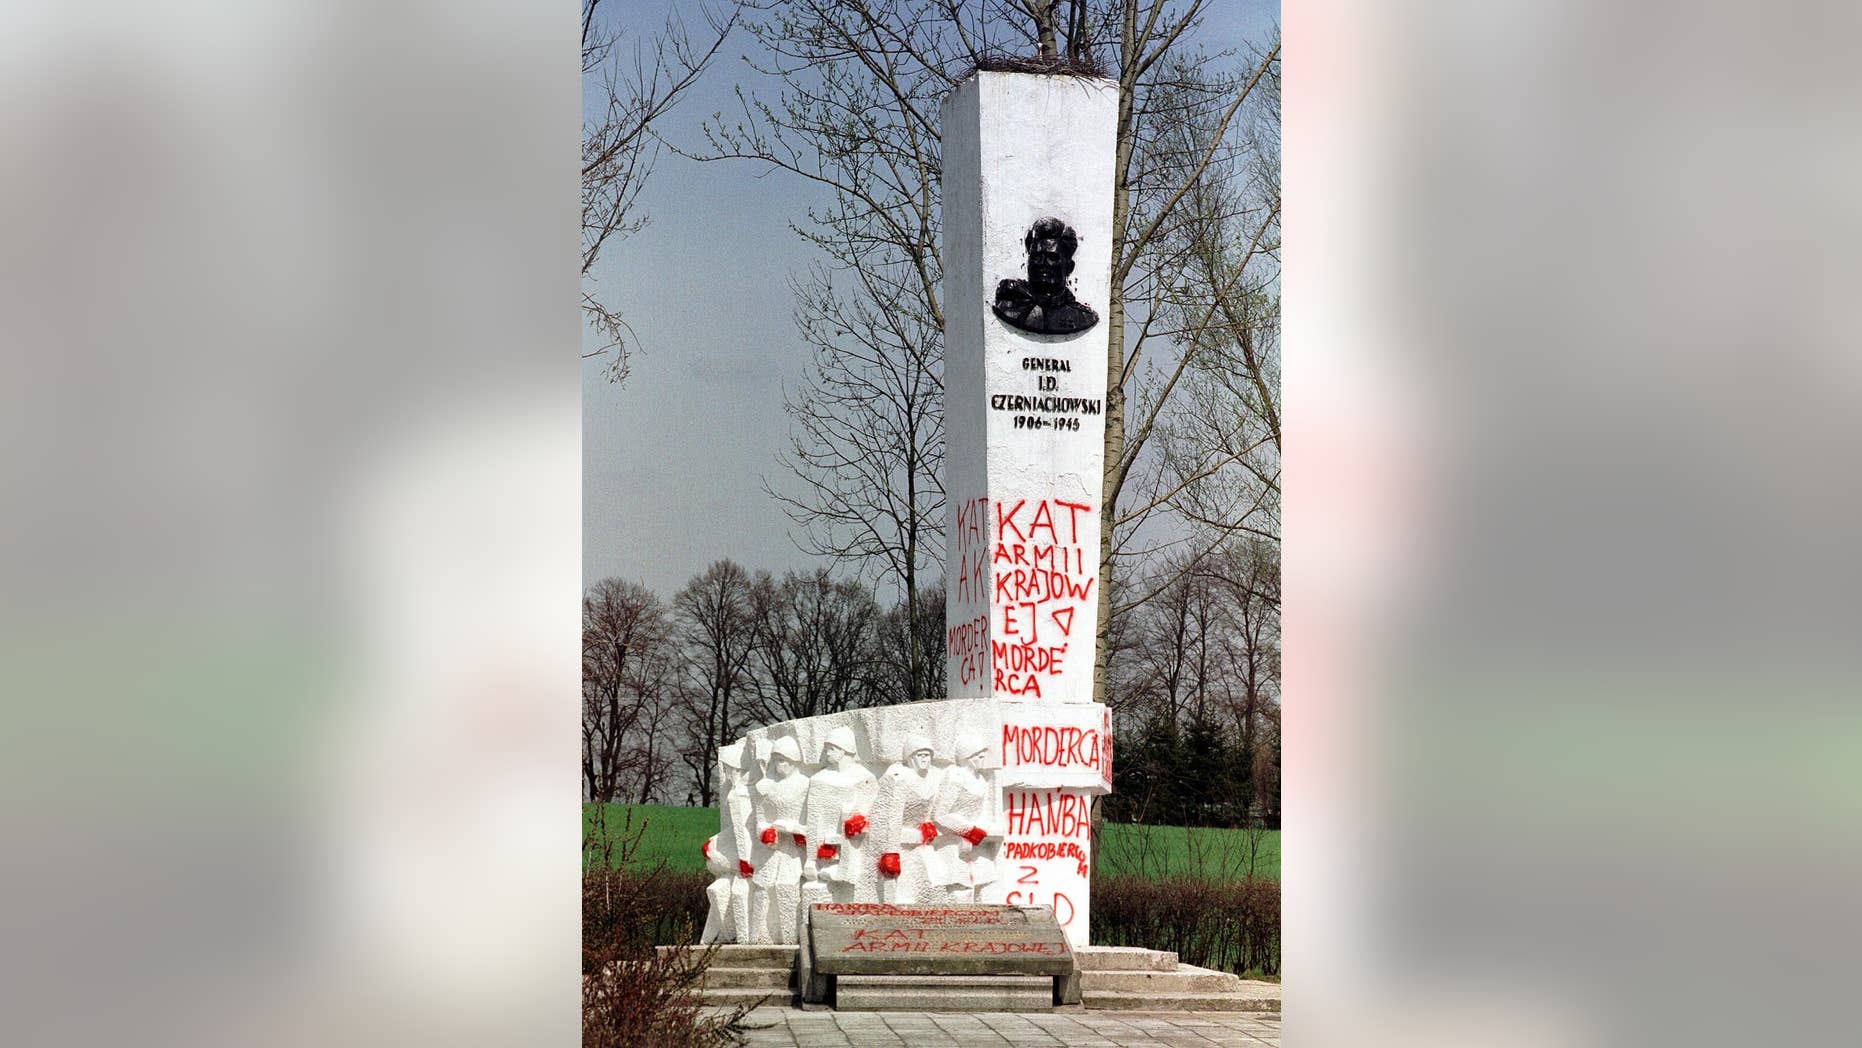 """FILE- In this April 30, 2001 file photo taken in Pieniezno, Poland, graffiti with insults like """"Murderer"""" and """"Shame"""" can be seen on a memorial to Soviet General Ivan Chernyakhovsky, who is considered a symbol of the imposition of communism in Poland, but a national hero in Russia. Russian Ambassador Sergey Andreev on Friday described the Soviet's 1939 invasion of Poland as an act of self-defense, not aggression. The comment prompted Poland's Foreign Ministry to declare Saturday, Sept. 26, 2015, that the ambassador """"undermines historical truth"""" and seems to be trying to justify Stalinist crimes. (AP Photo/Wojtek Jakubowski, file)  POLAND OUT"""